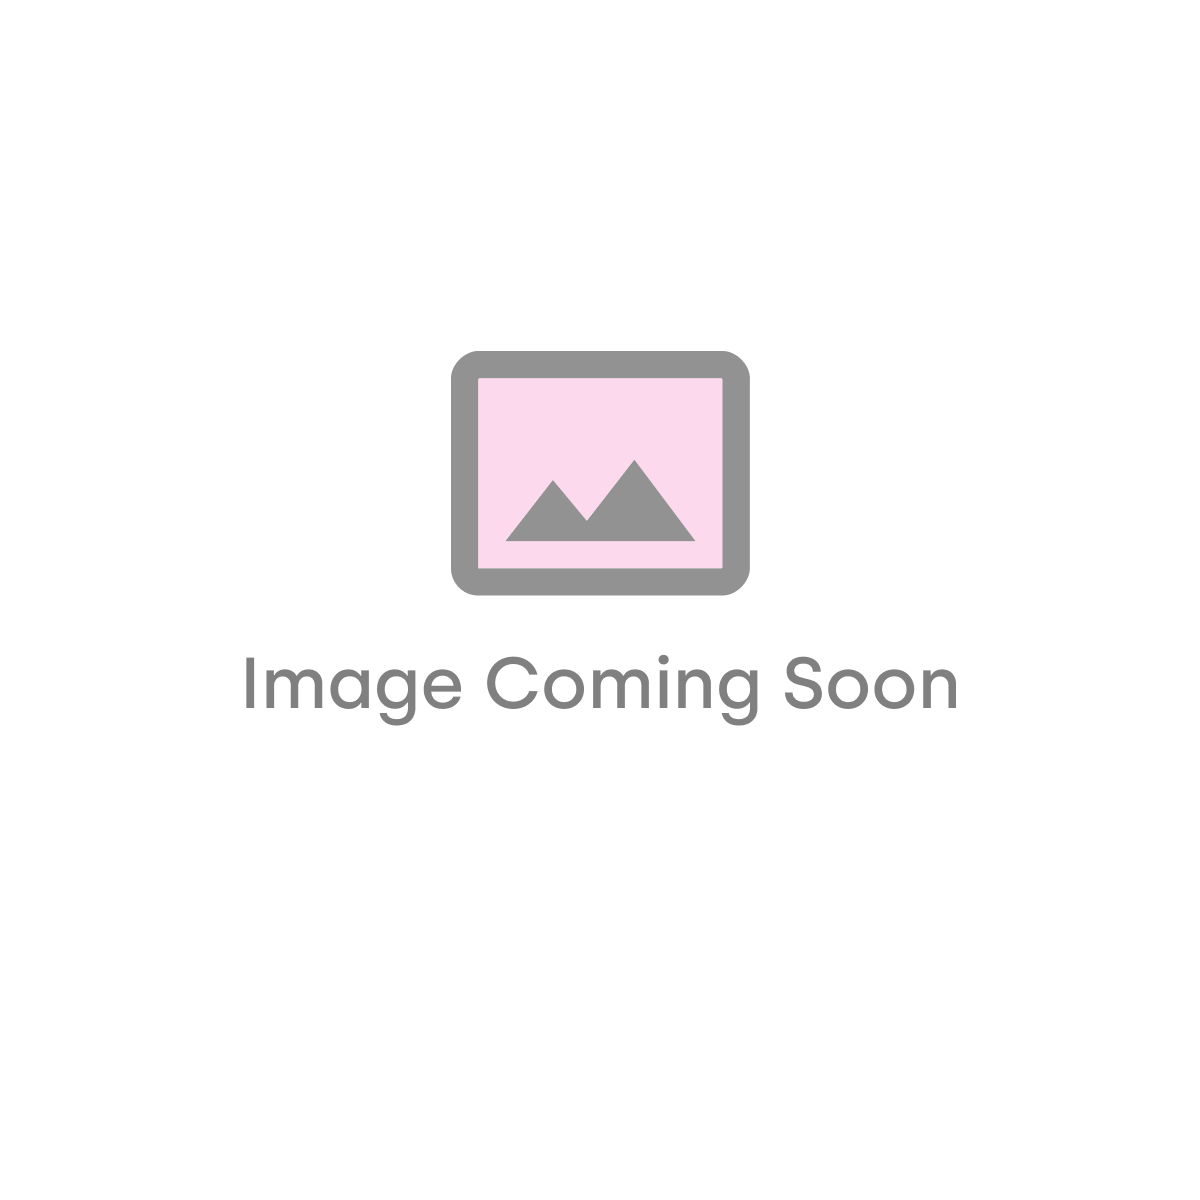 Moods Bathrooms to Love Solarna L-Shape 1500 x 700mm Shower Bath inc. Screen - Right Hand (12241)